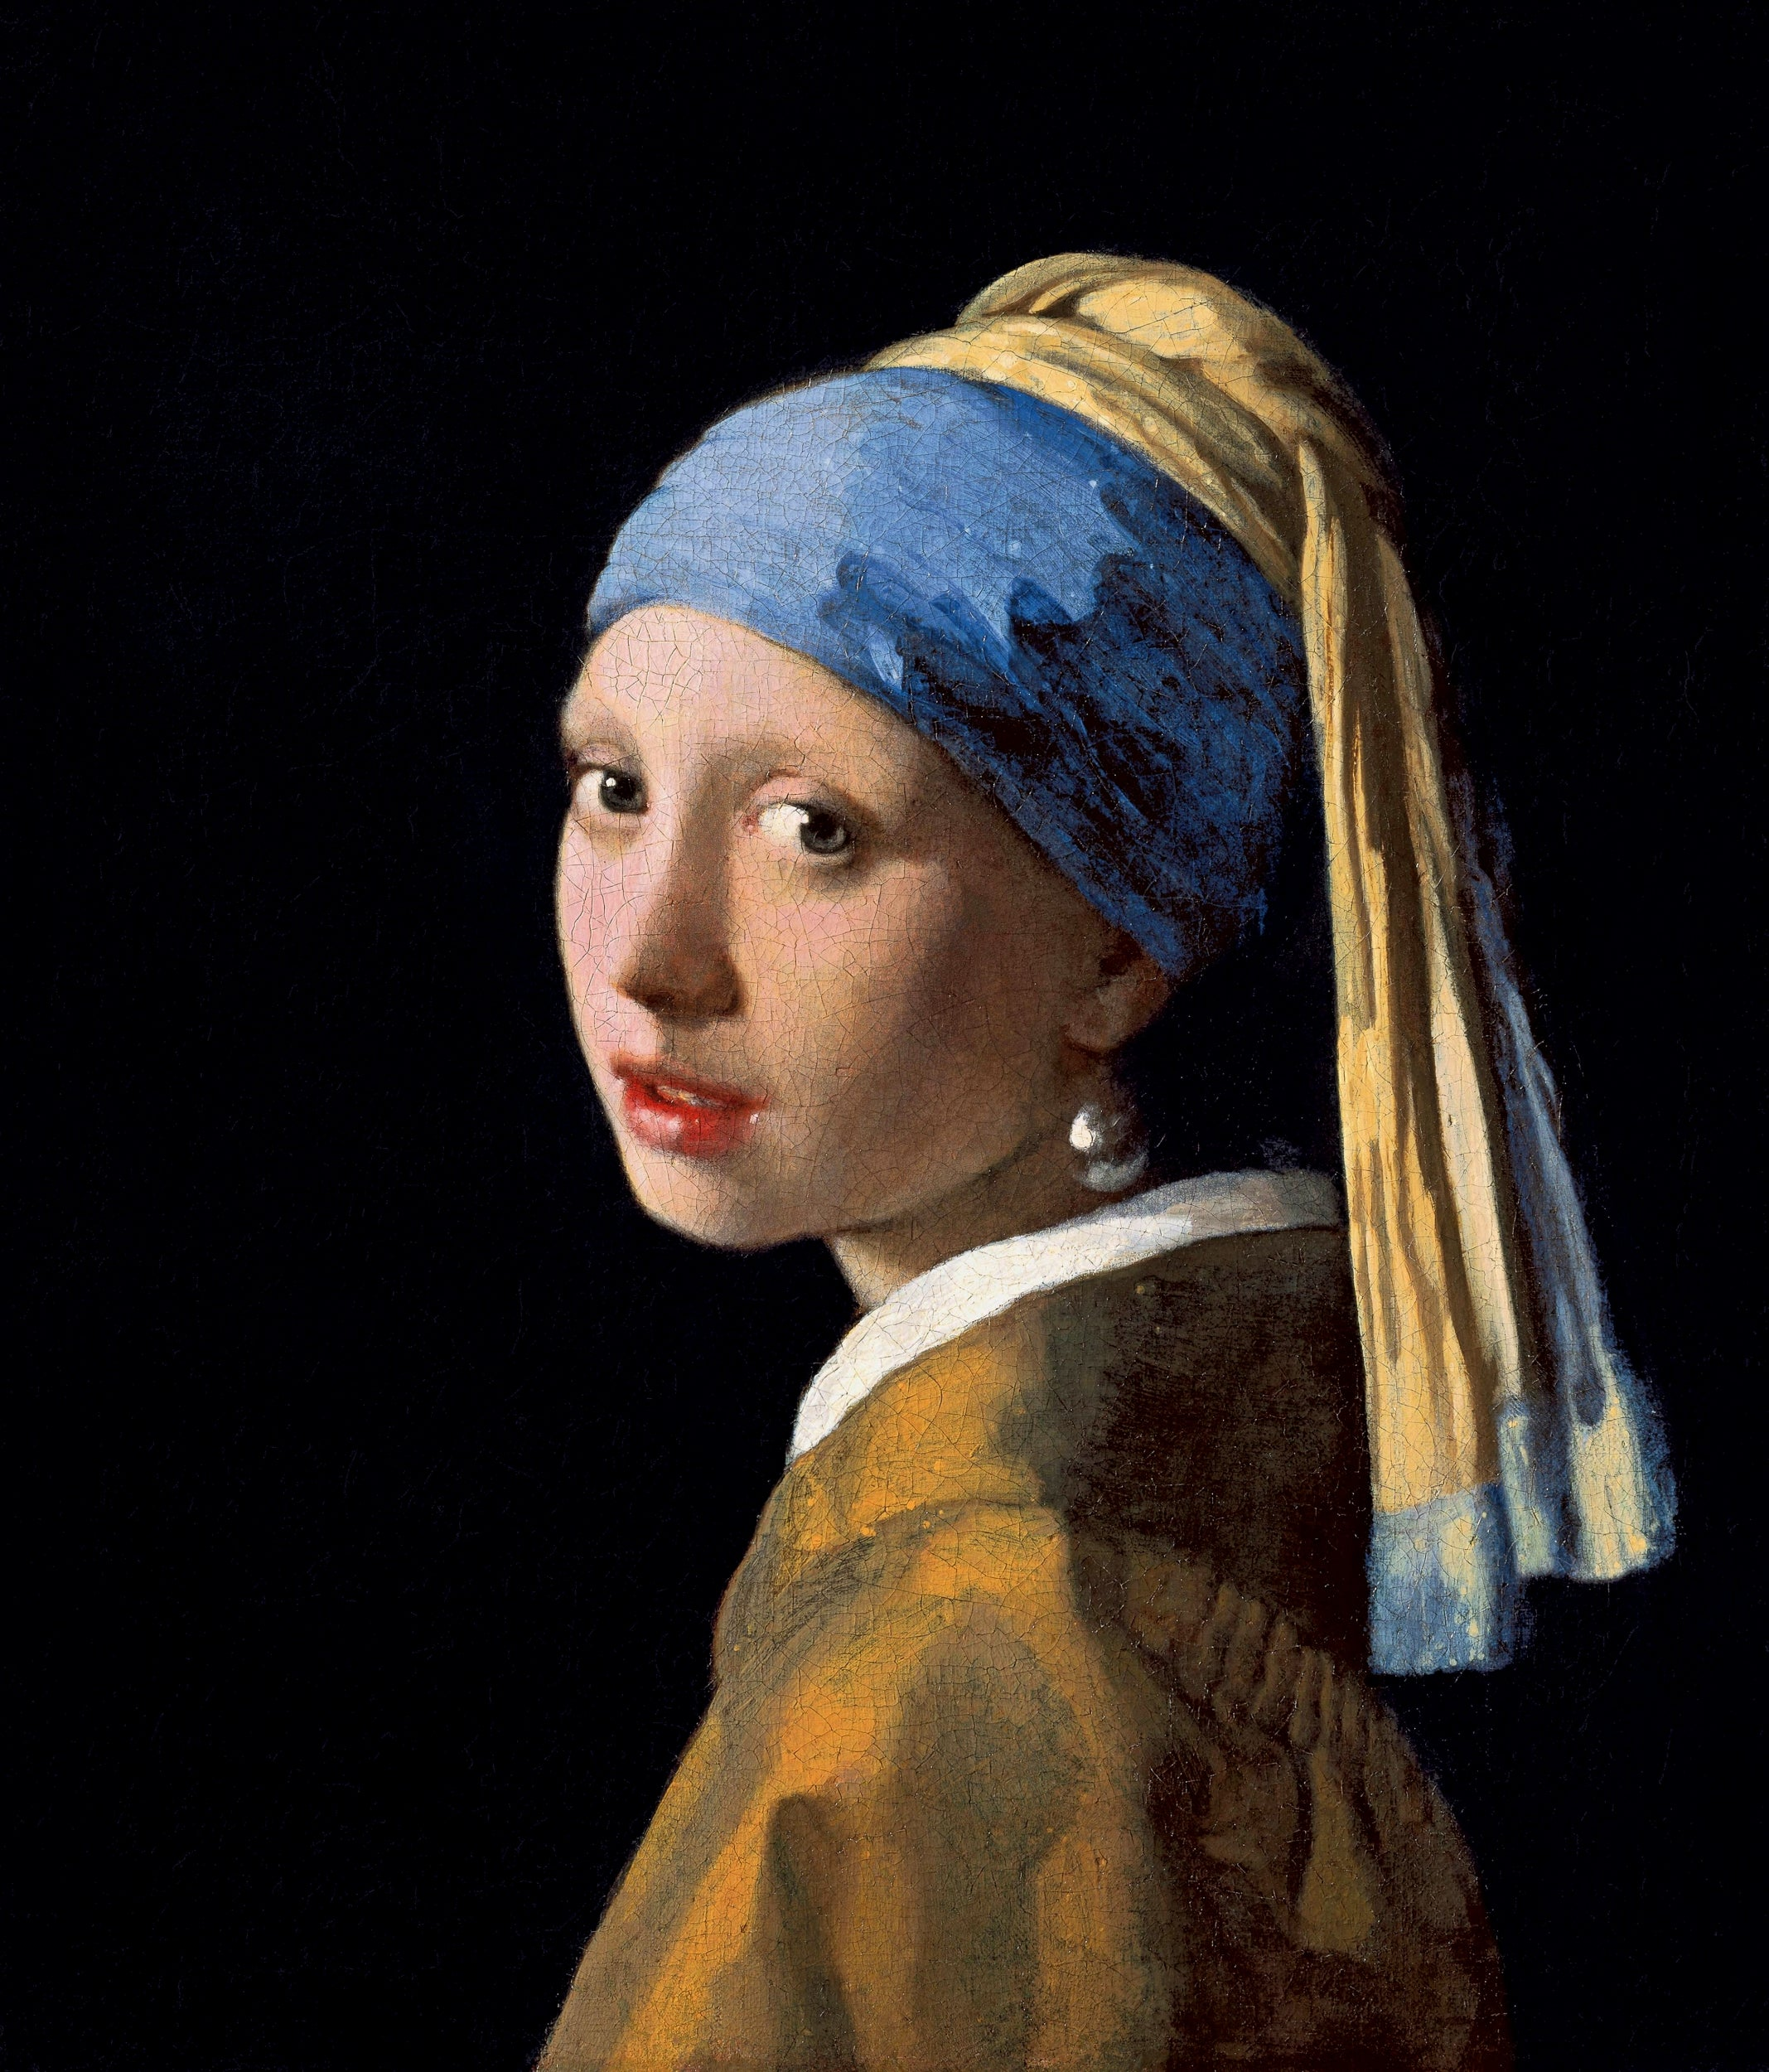 Johannes Vermeer's Girl with a Pearl Earring (c.1665) at the Mauritshuis in The Hague